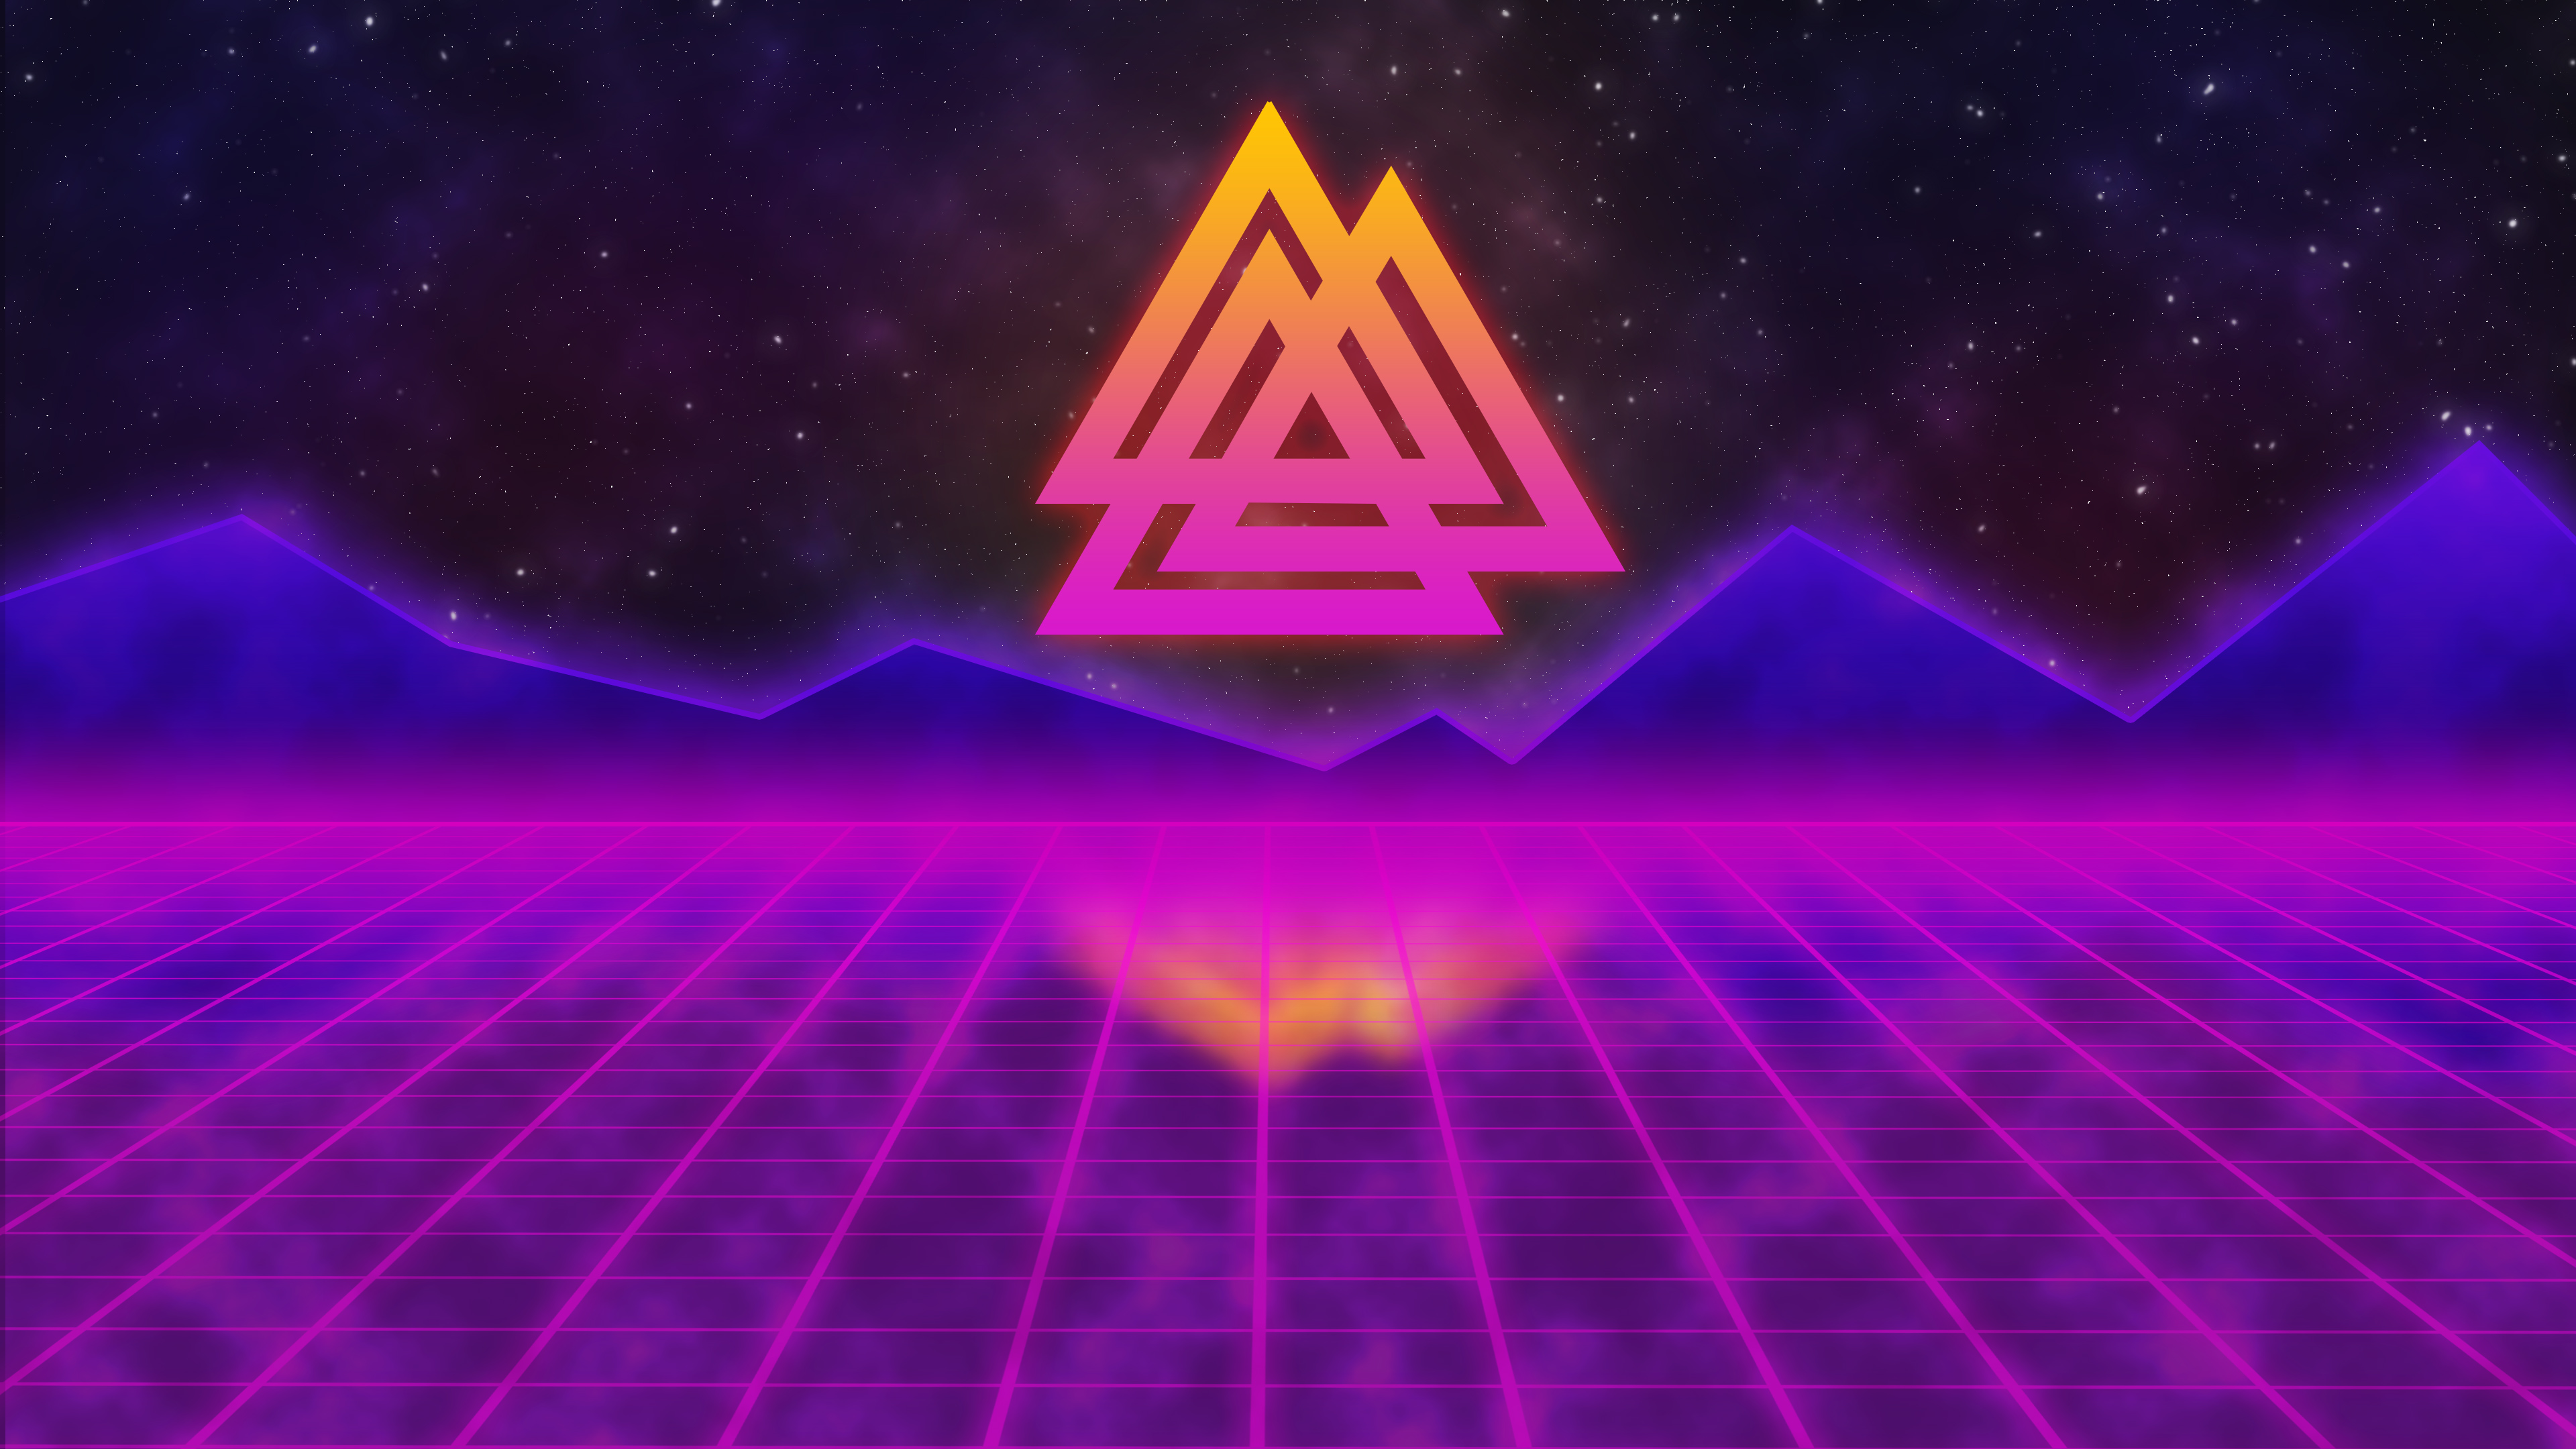 Retrowave viking hd artist 4k wallpapers images - Space 80s wallpaper ...